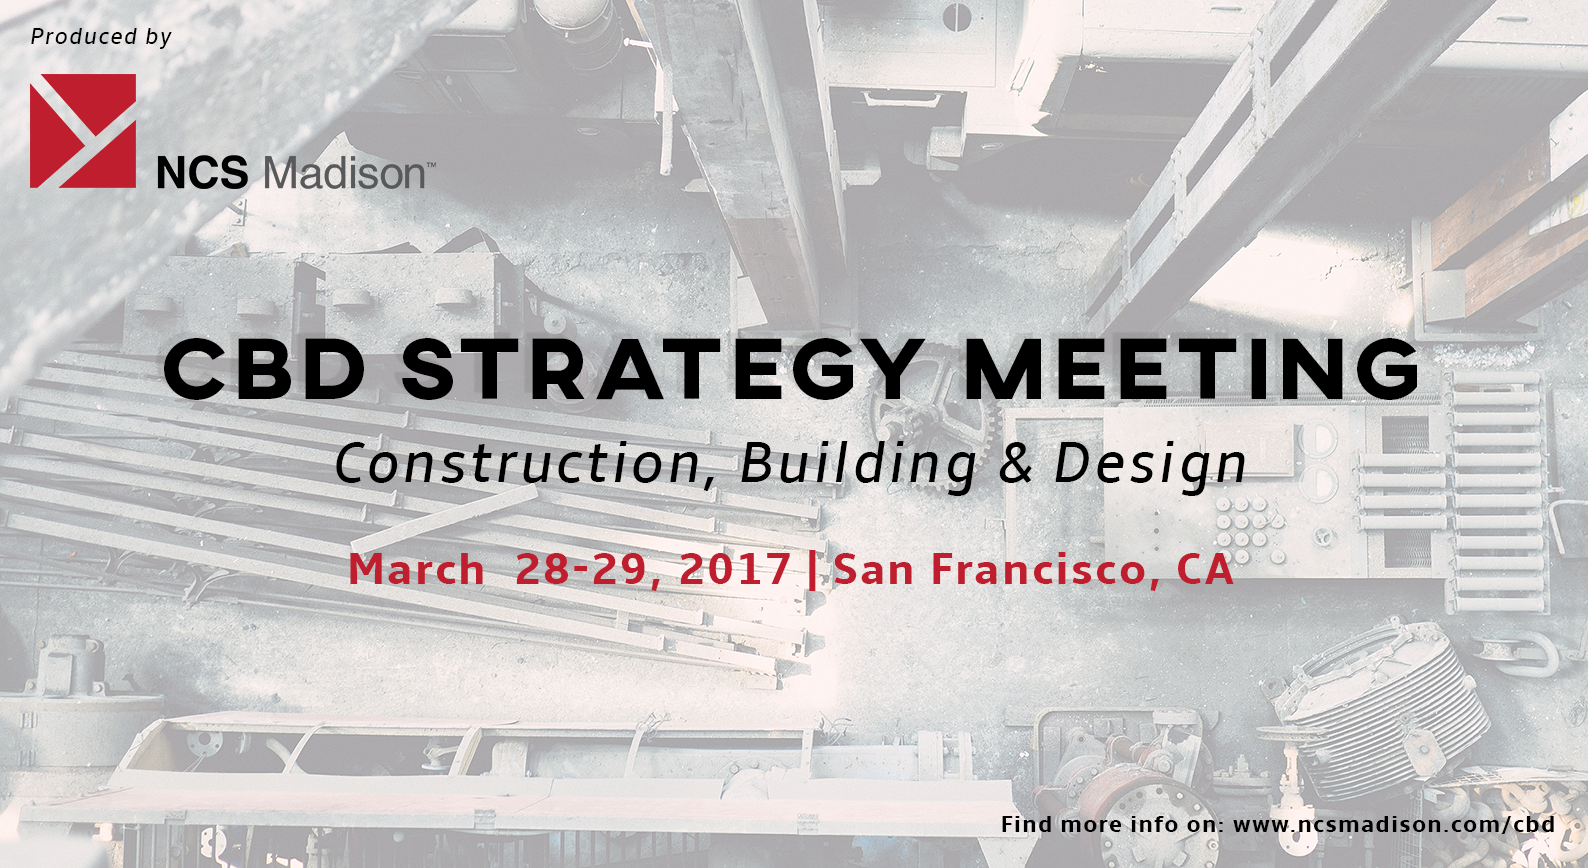 The Inaugural Construction, Building, & Design Strategy Meeting